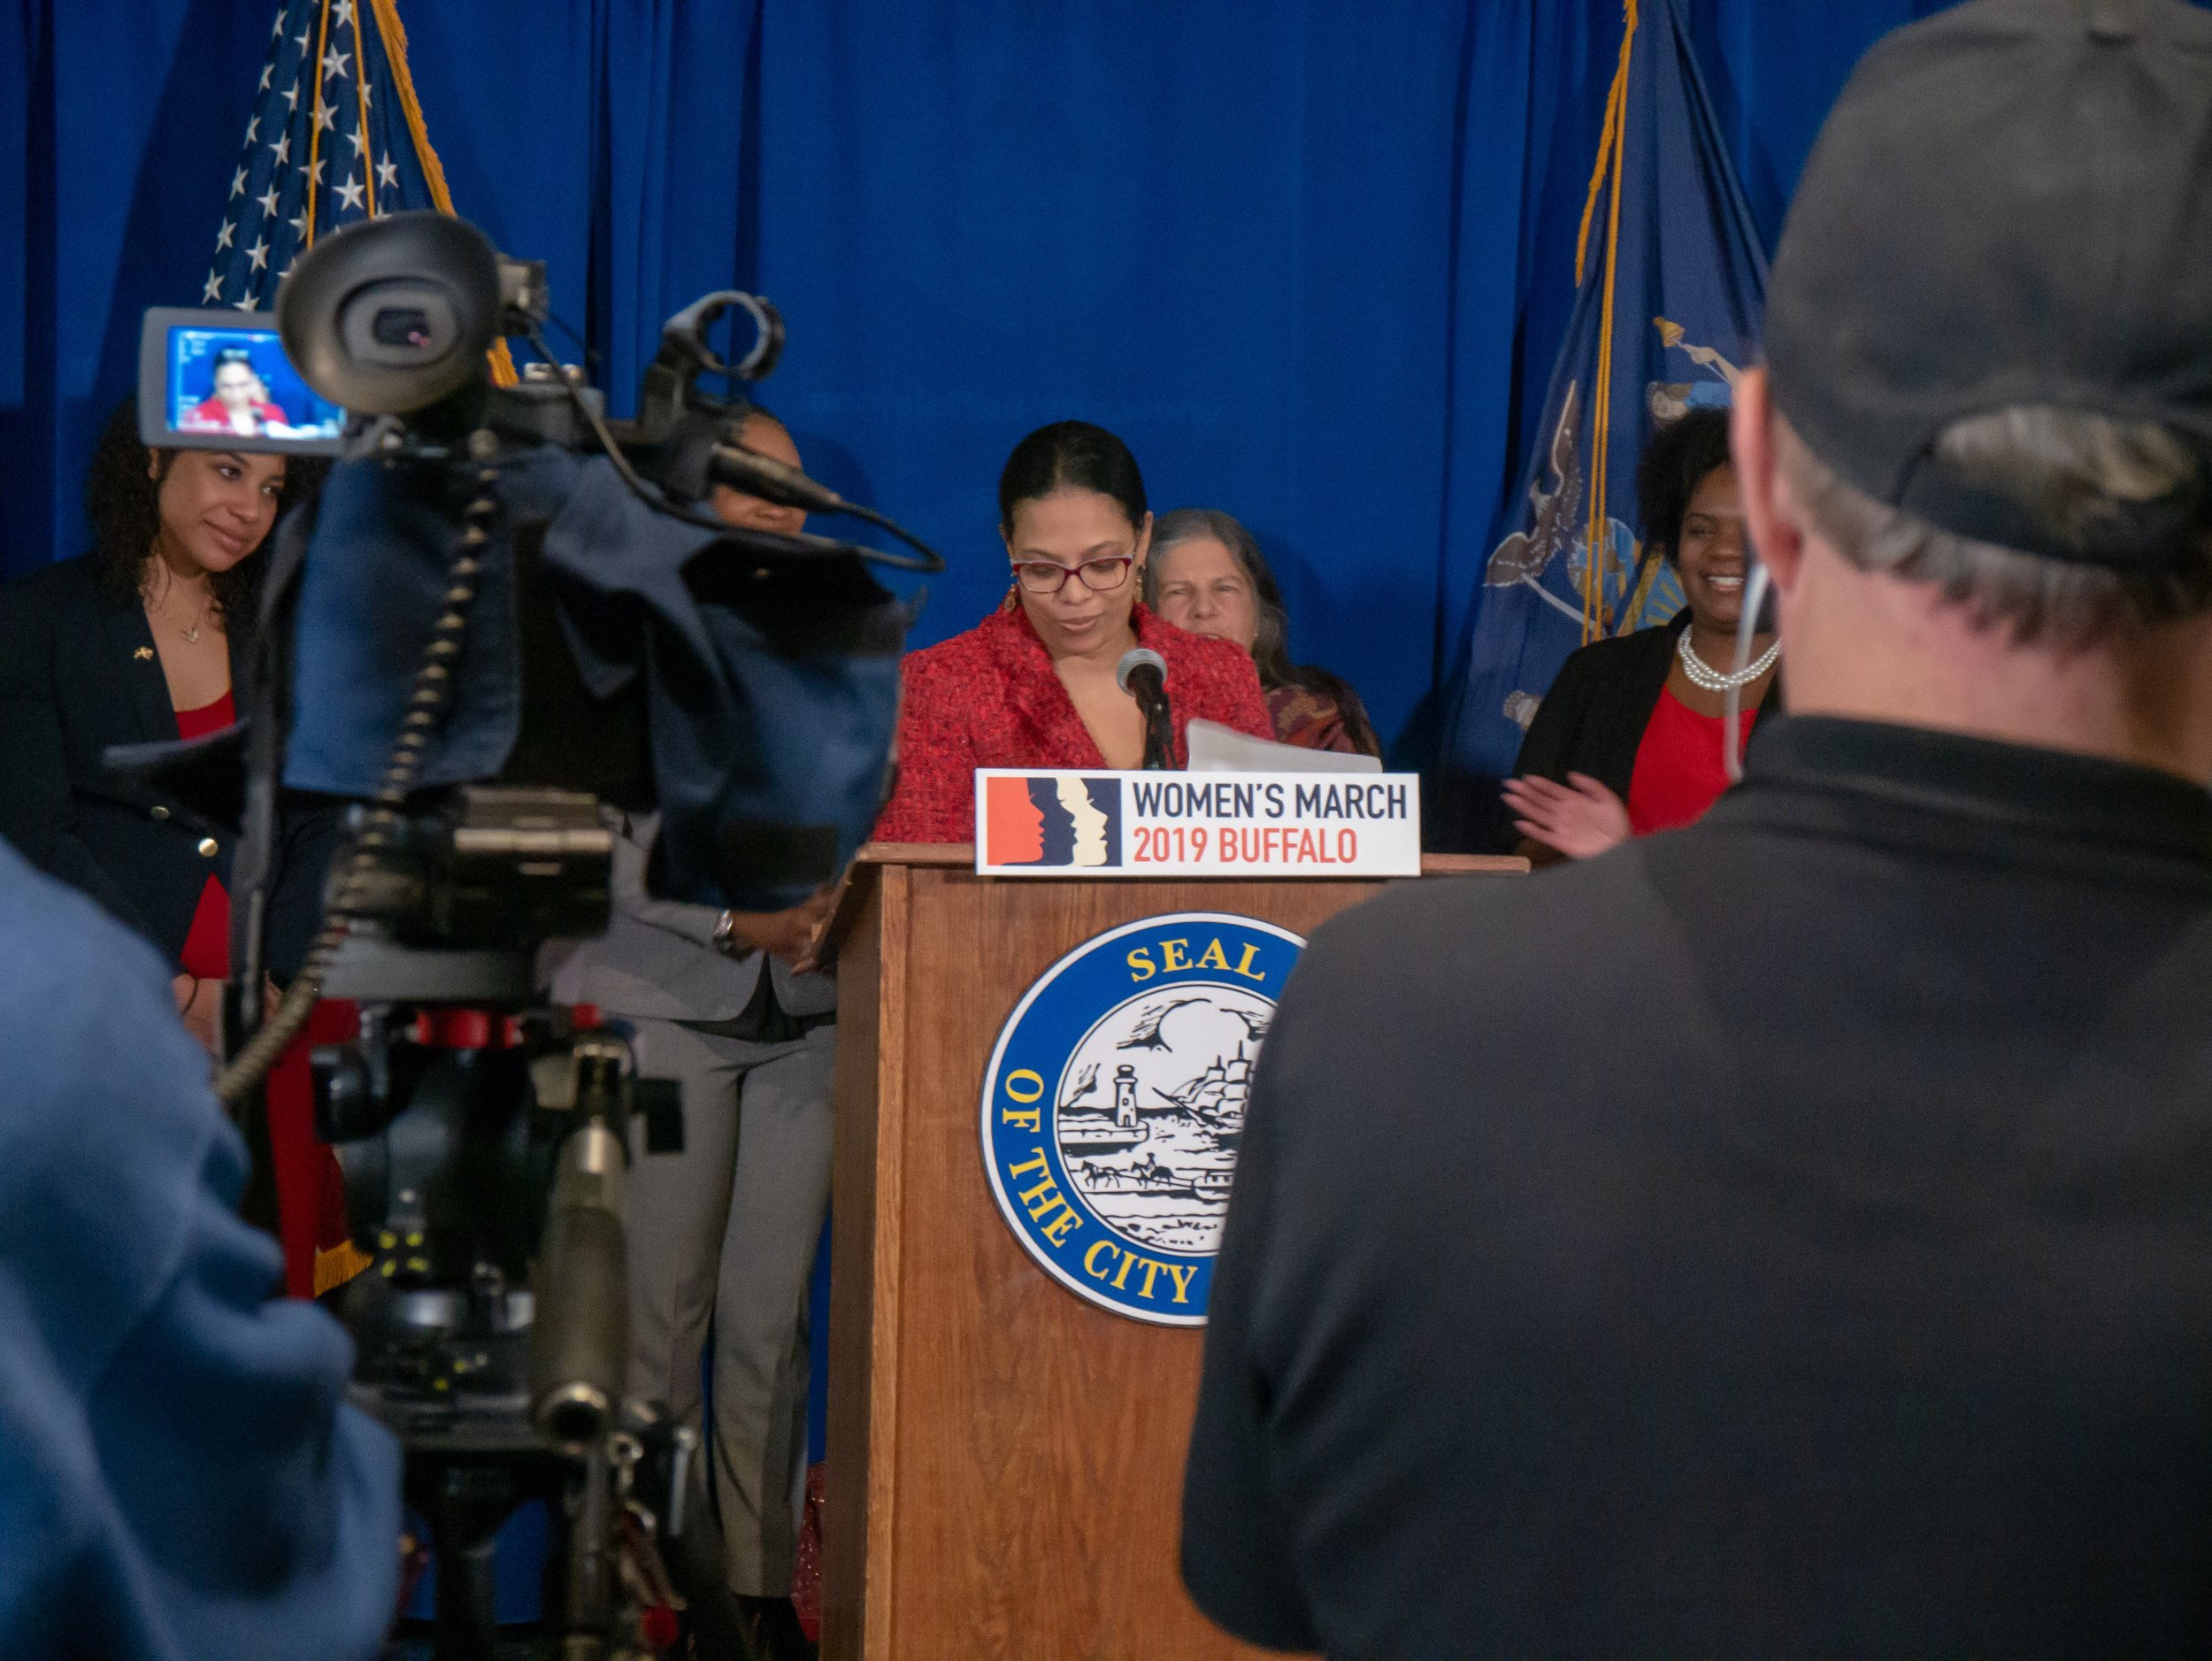 Woman politician at a press conference in front of cameras